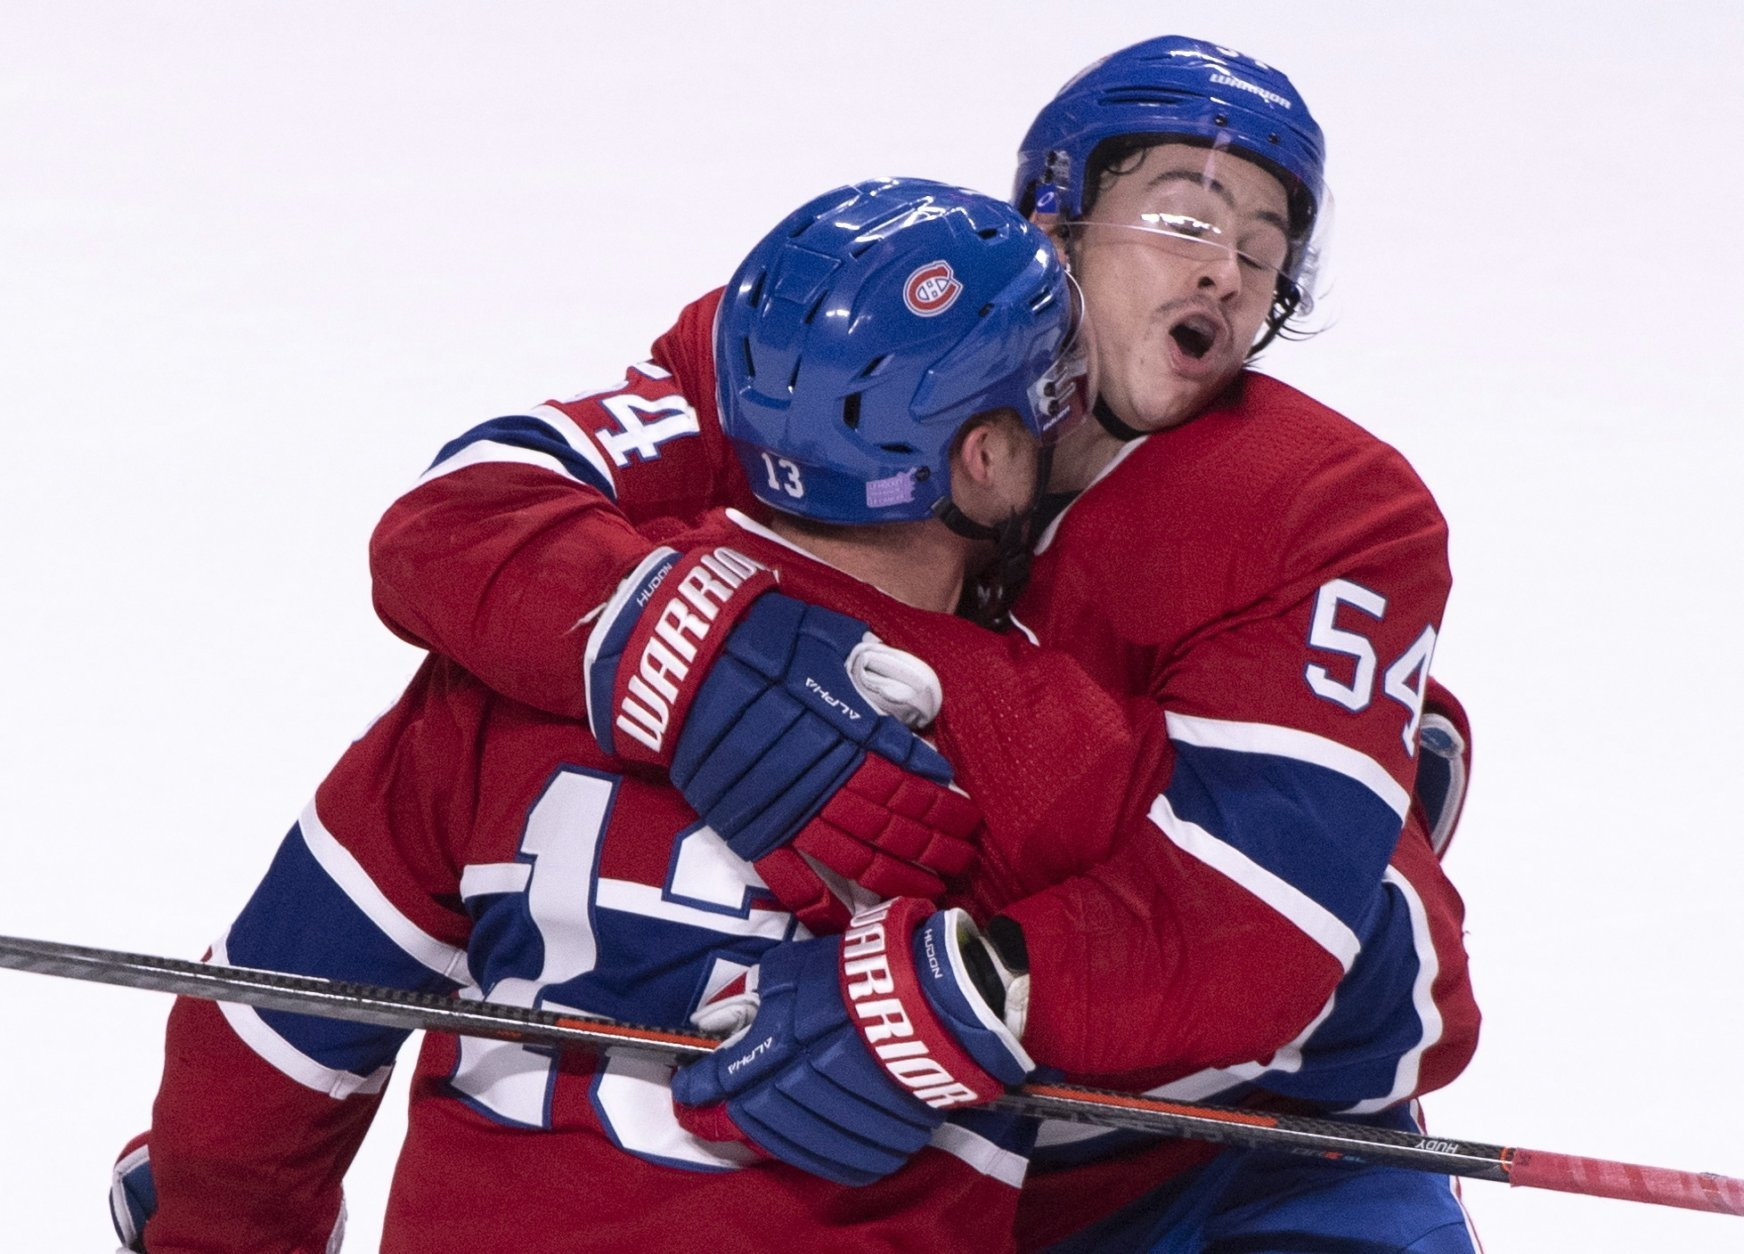 Montreal Canadiens' Charles Hudon hugs teammate Max Domi following Domi's goal past Washington Capitals goaltender Braden Holtby during third period NHL hockey action in Montreal on Thursday, Nov. 1, 2018. (Paul Chiasson/The Canadian Press via AP)